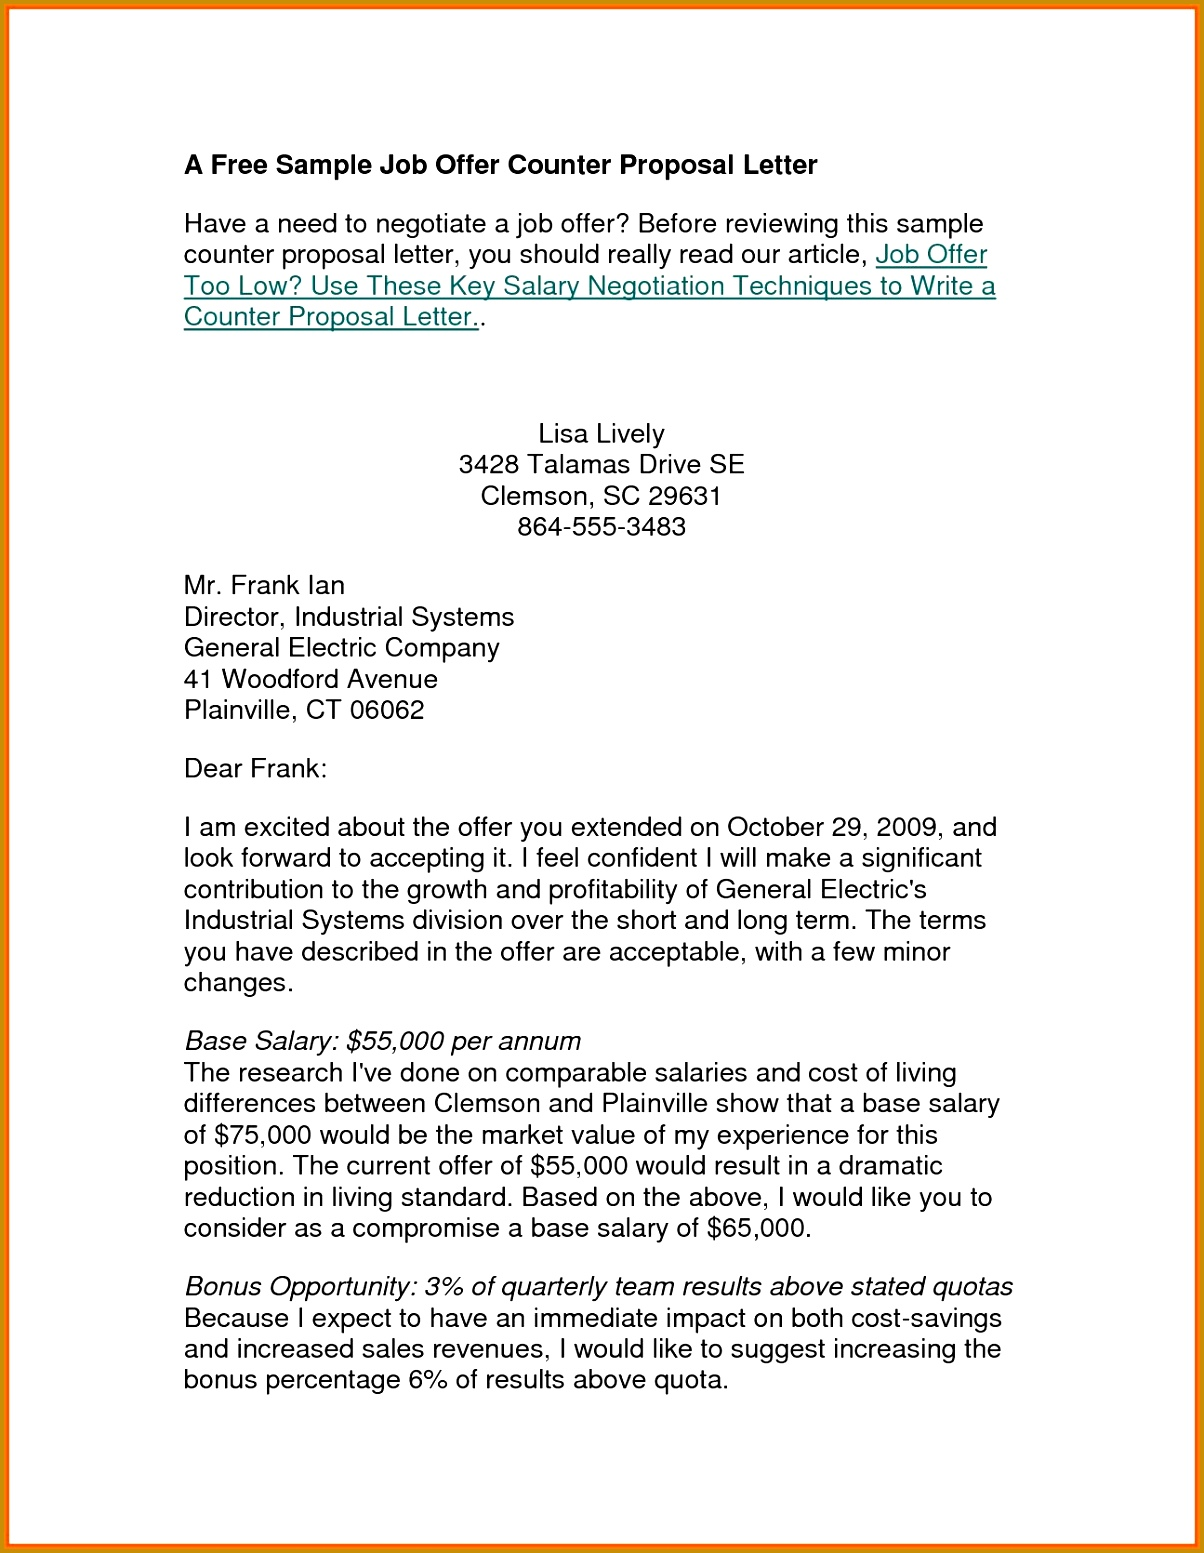 sample counter offer letter template design example inventory 15531204